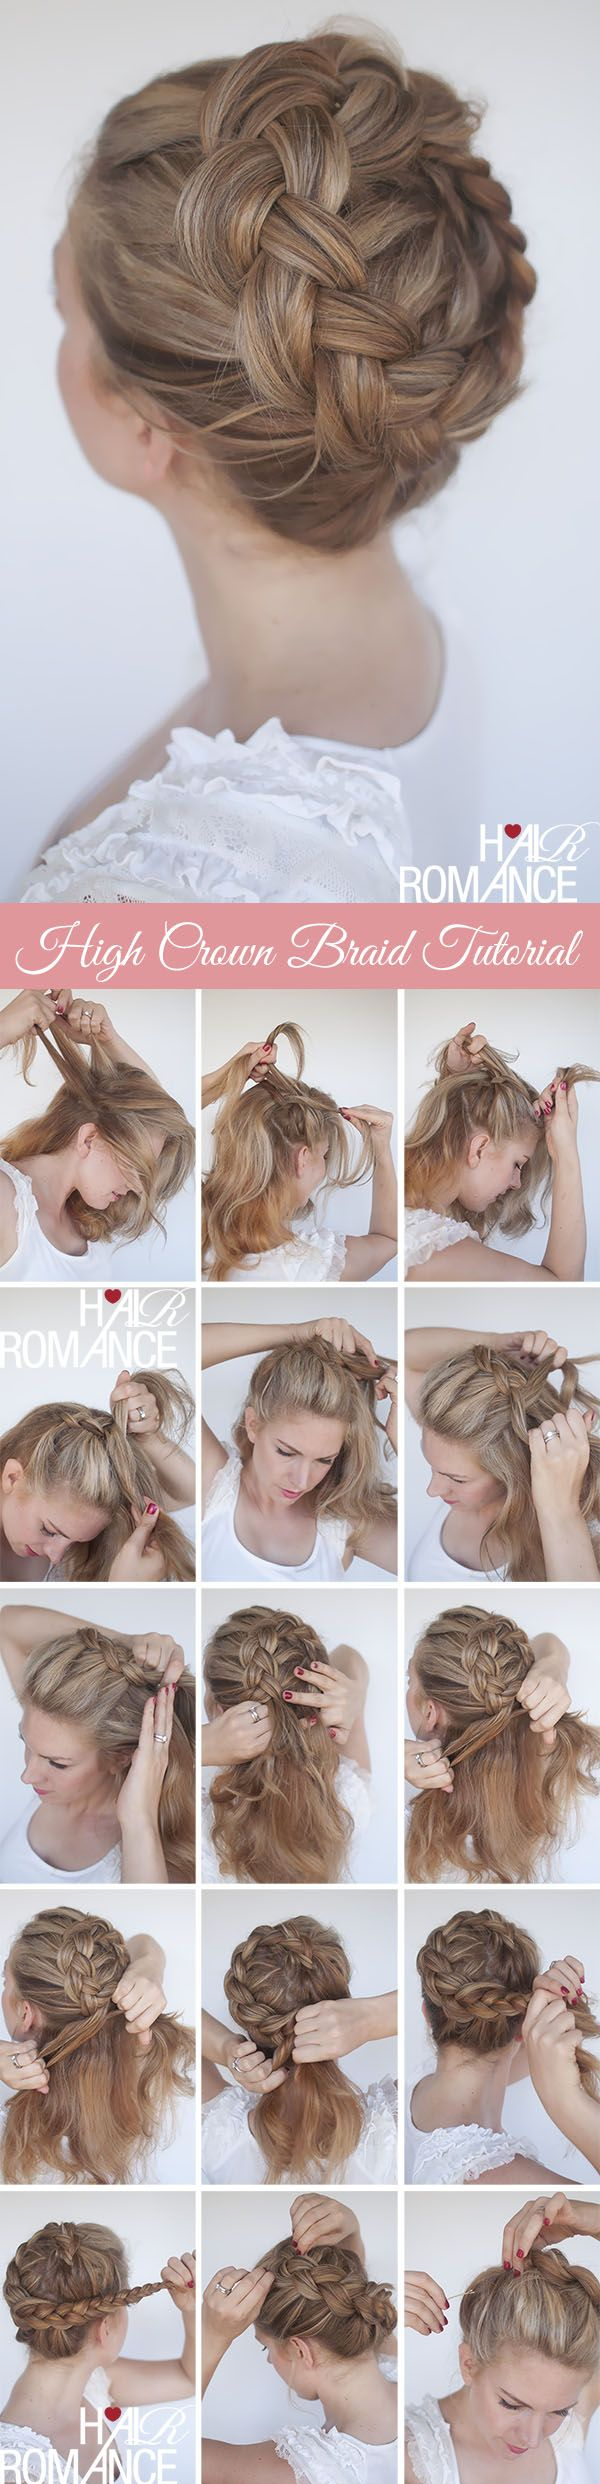 How-to DIY: Braided Crown Hairstyle